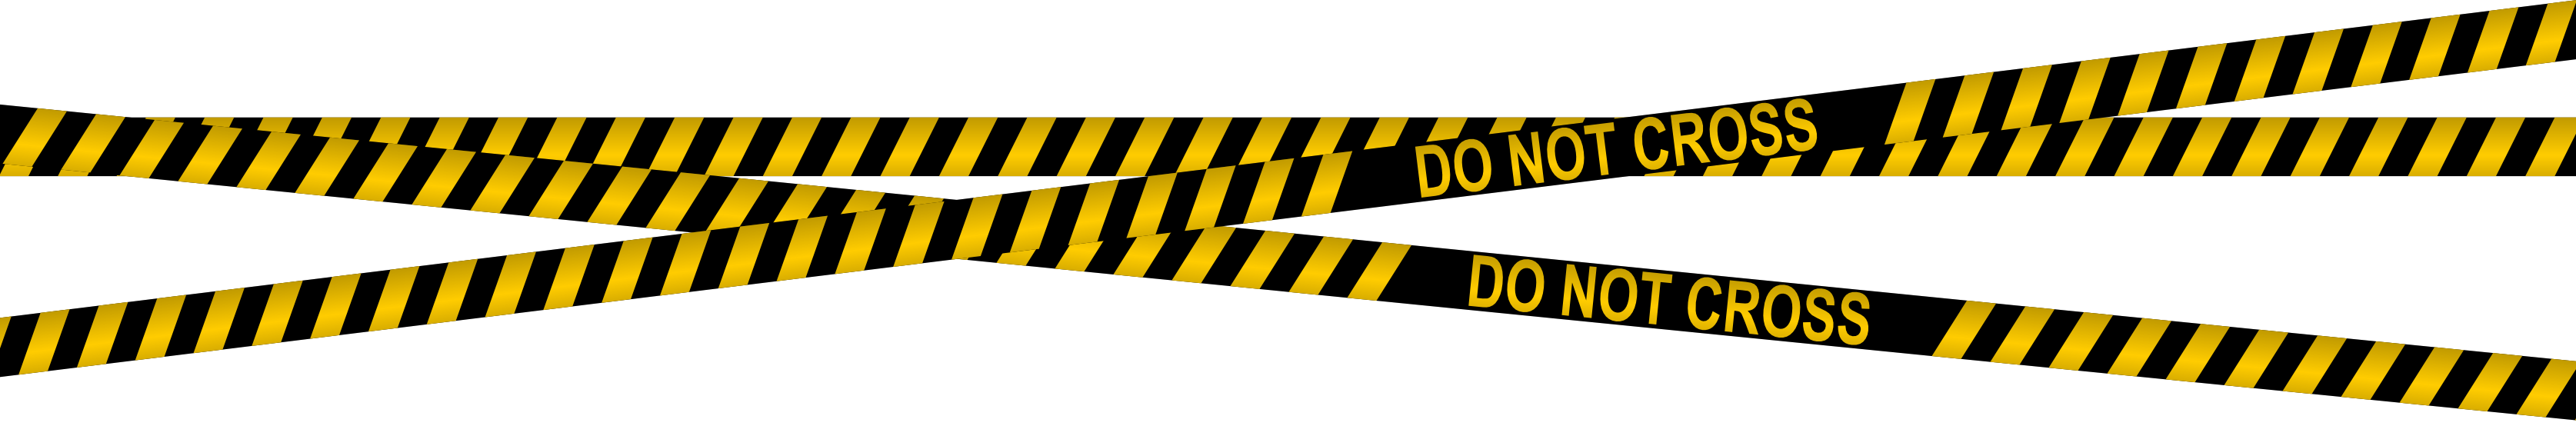 Cross .png. Police line do not